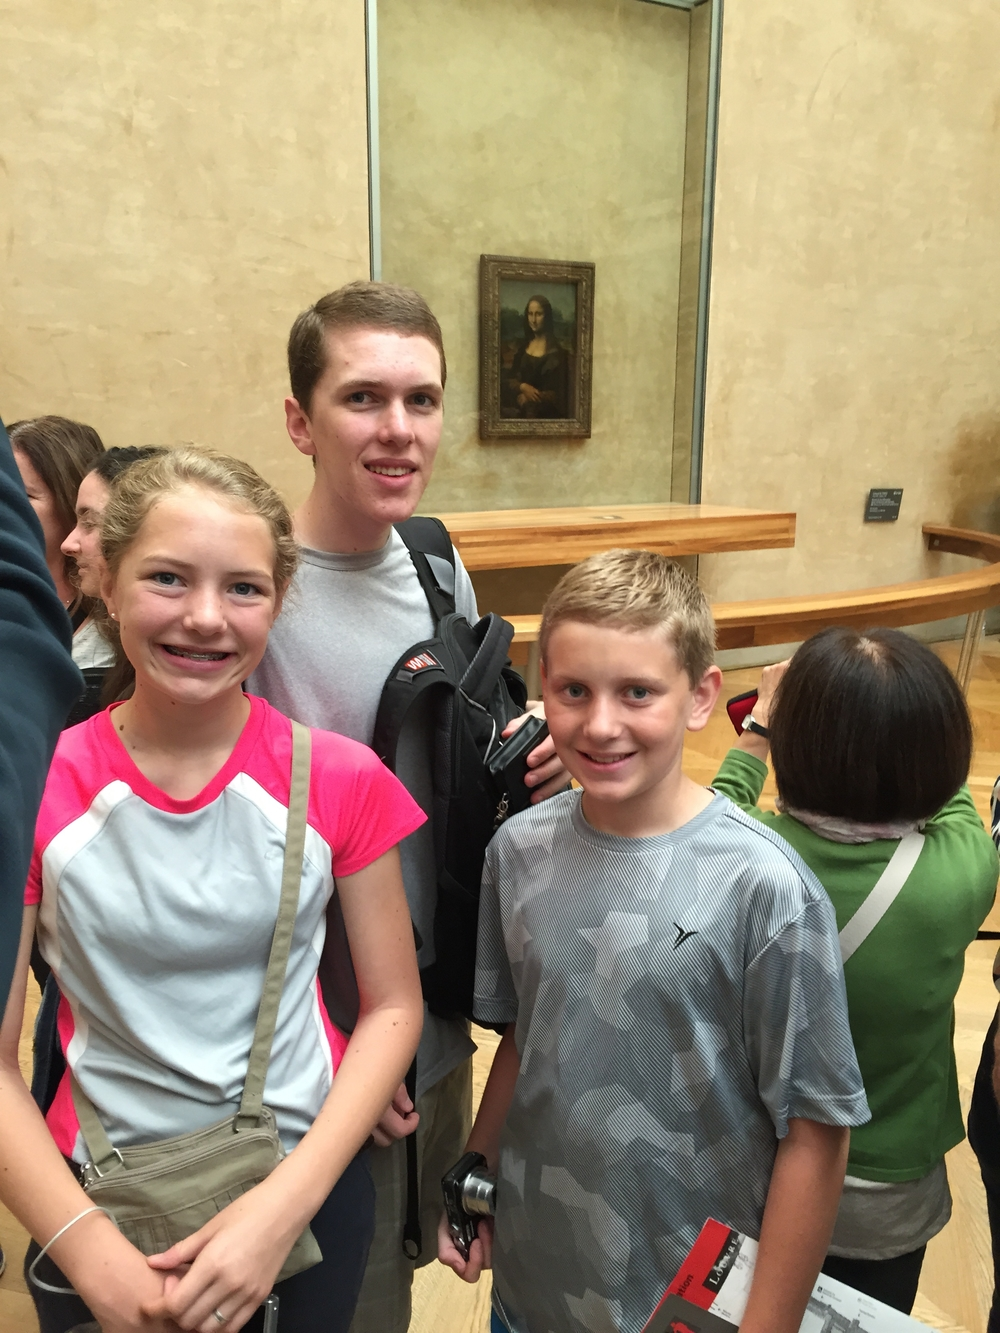 We think that the Mona Lisa is smiling...